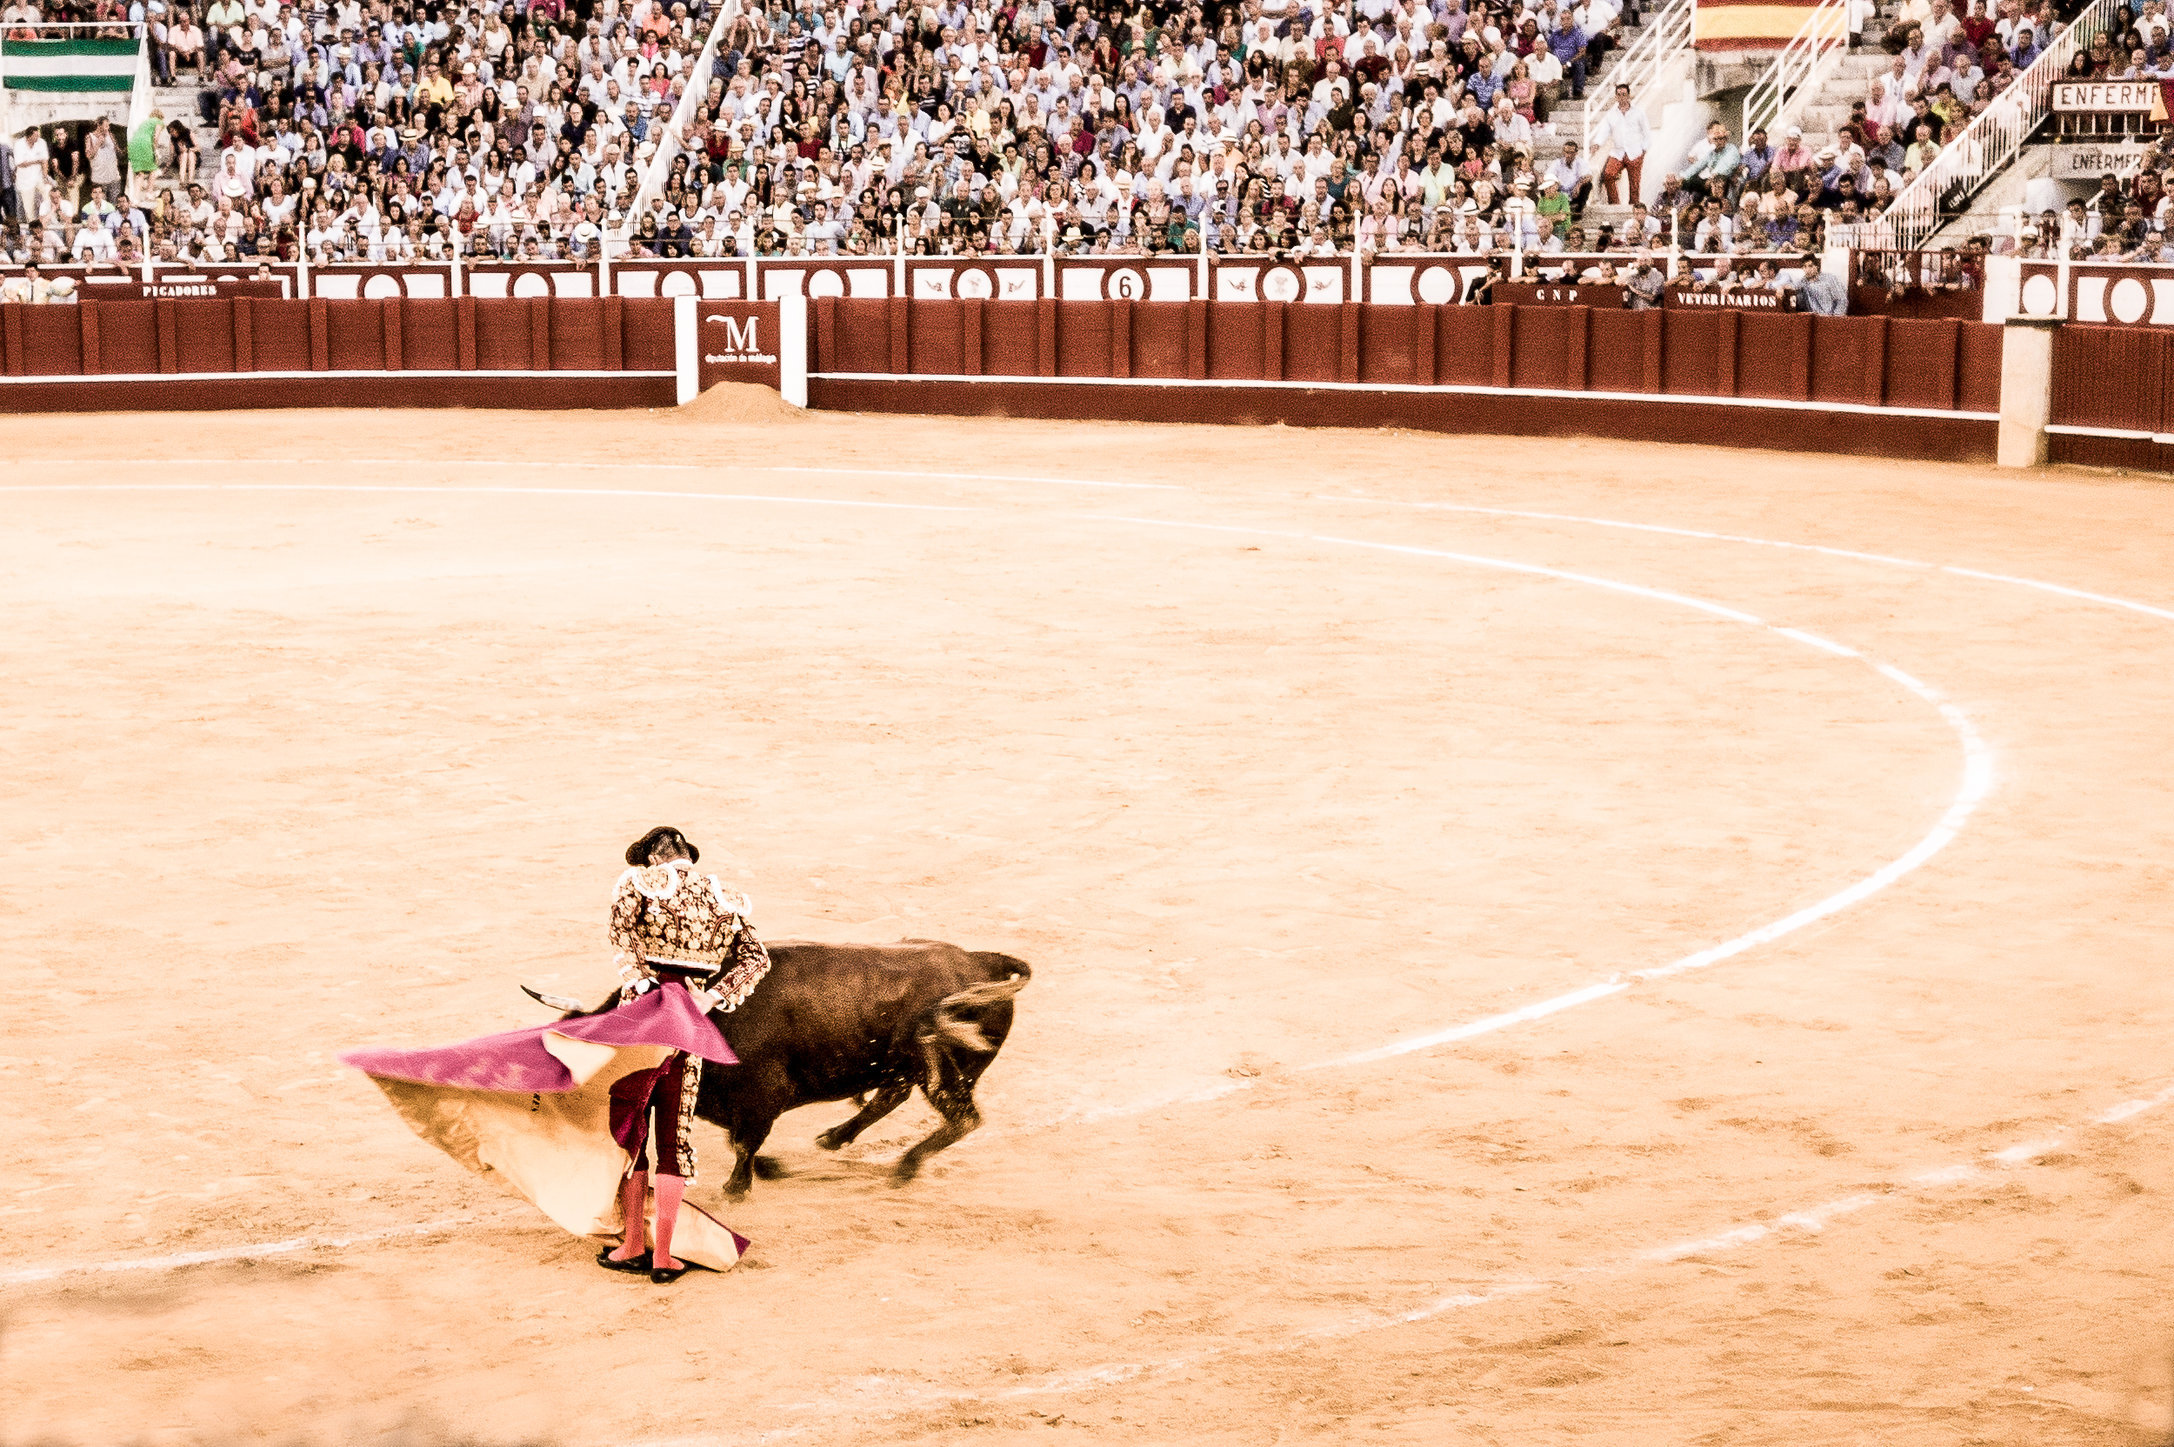 The Bullfight-195-bewerkt.jpg